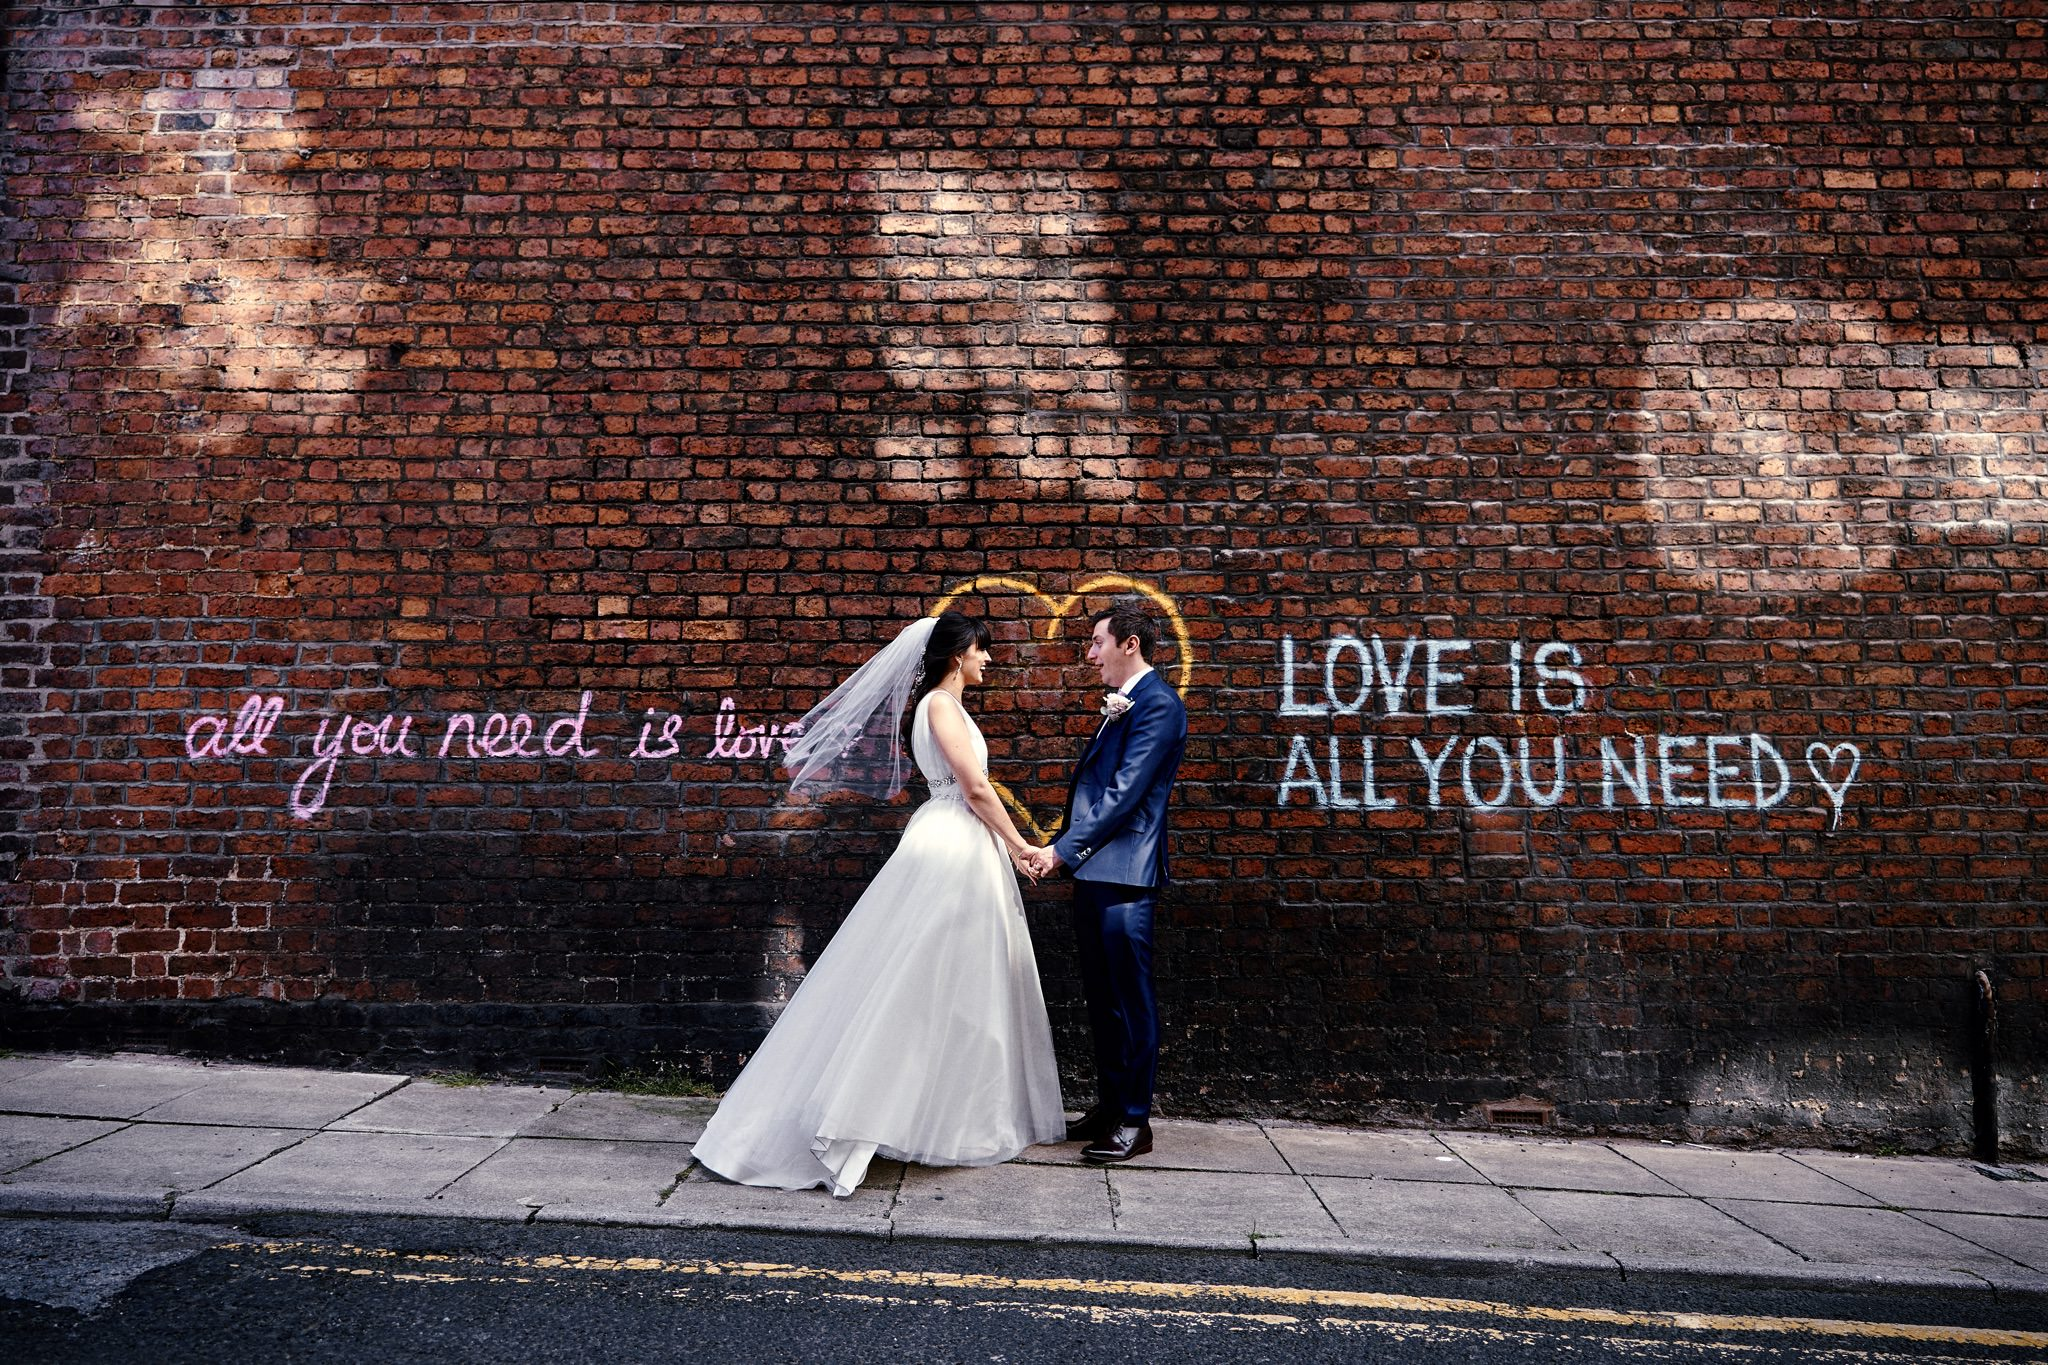 All you need is love, Love is all you need! Graffiti on Wall in Liverpool with Bride and Groom